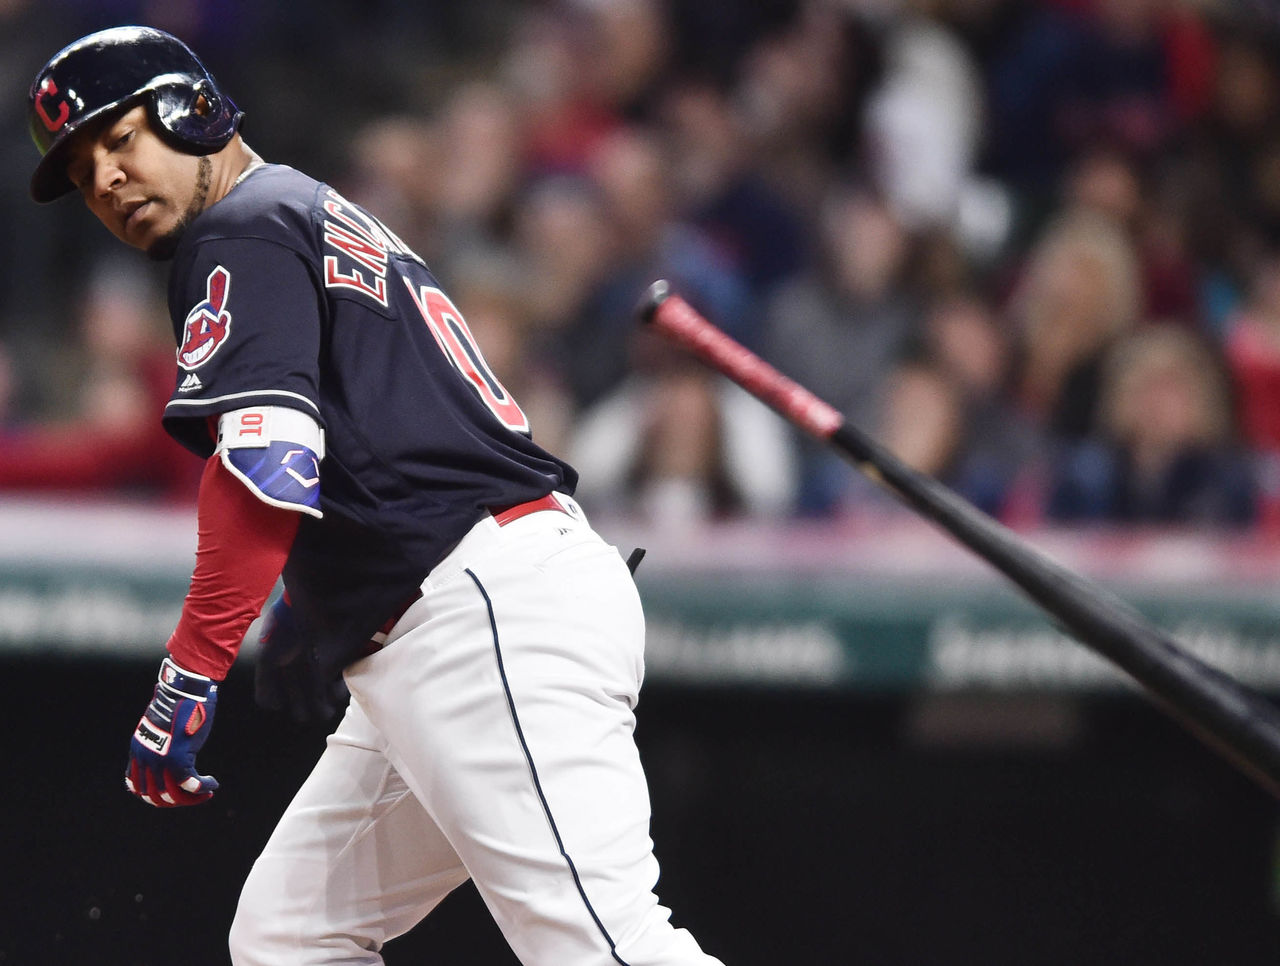 Cropped 2017 05 13t020135z 363800572 nocid rtrmadp 3 mlb minnesota twins at cleveland indians